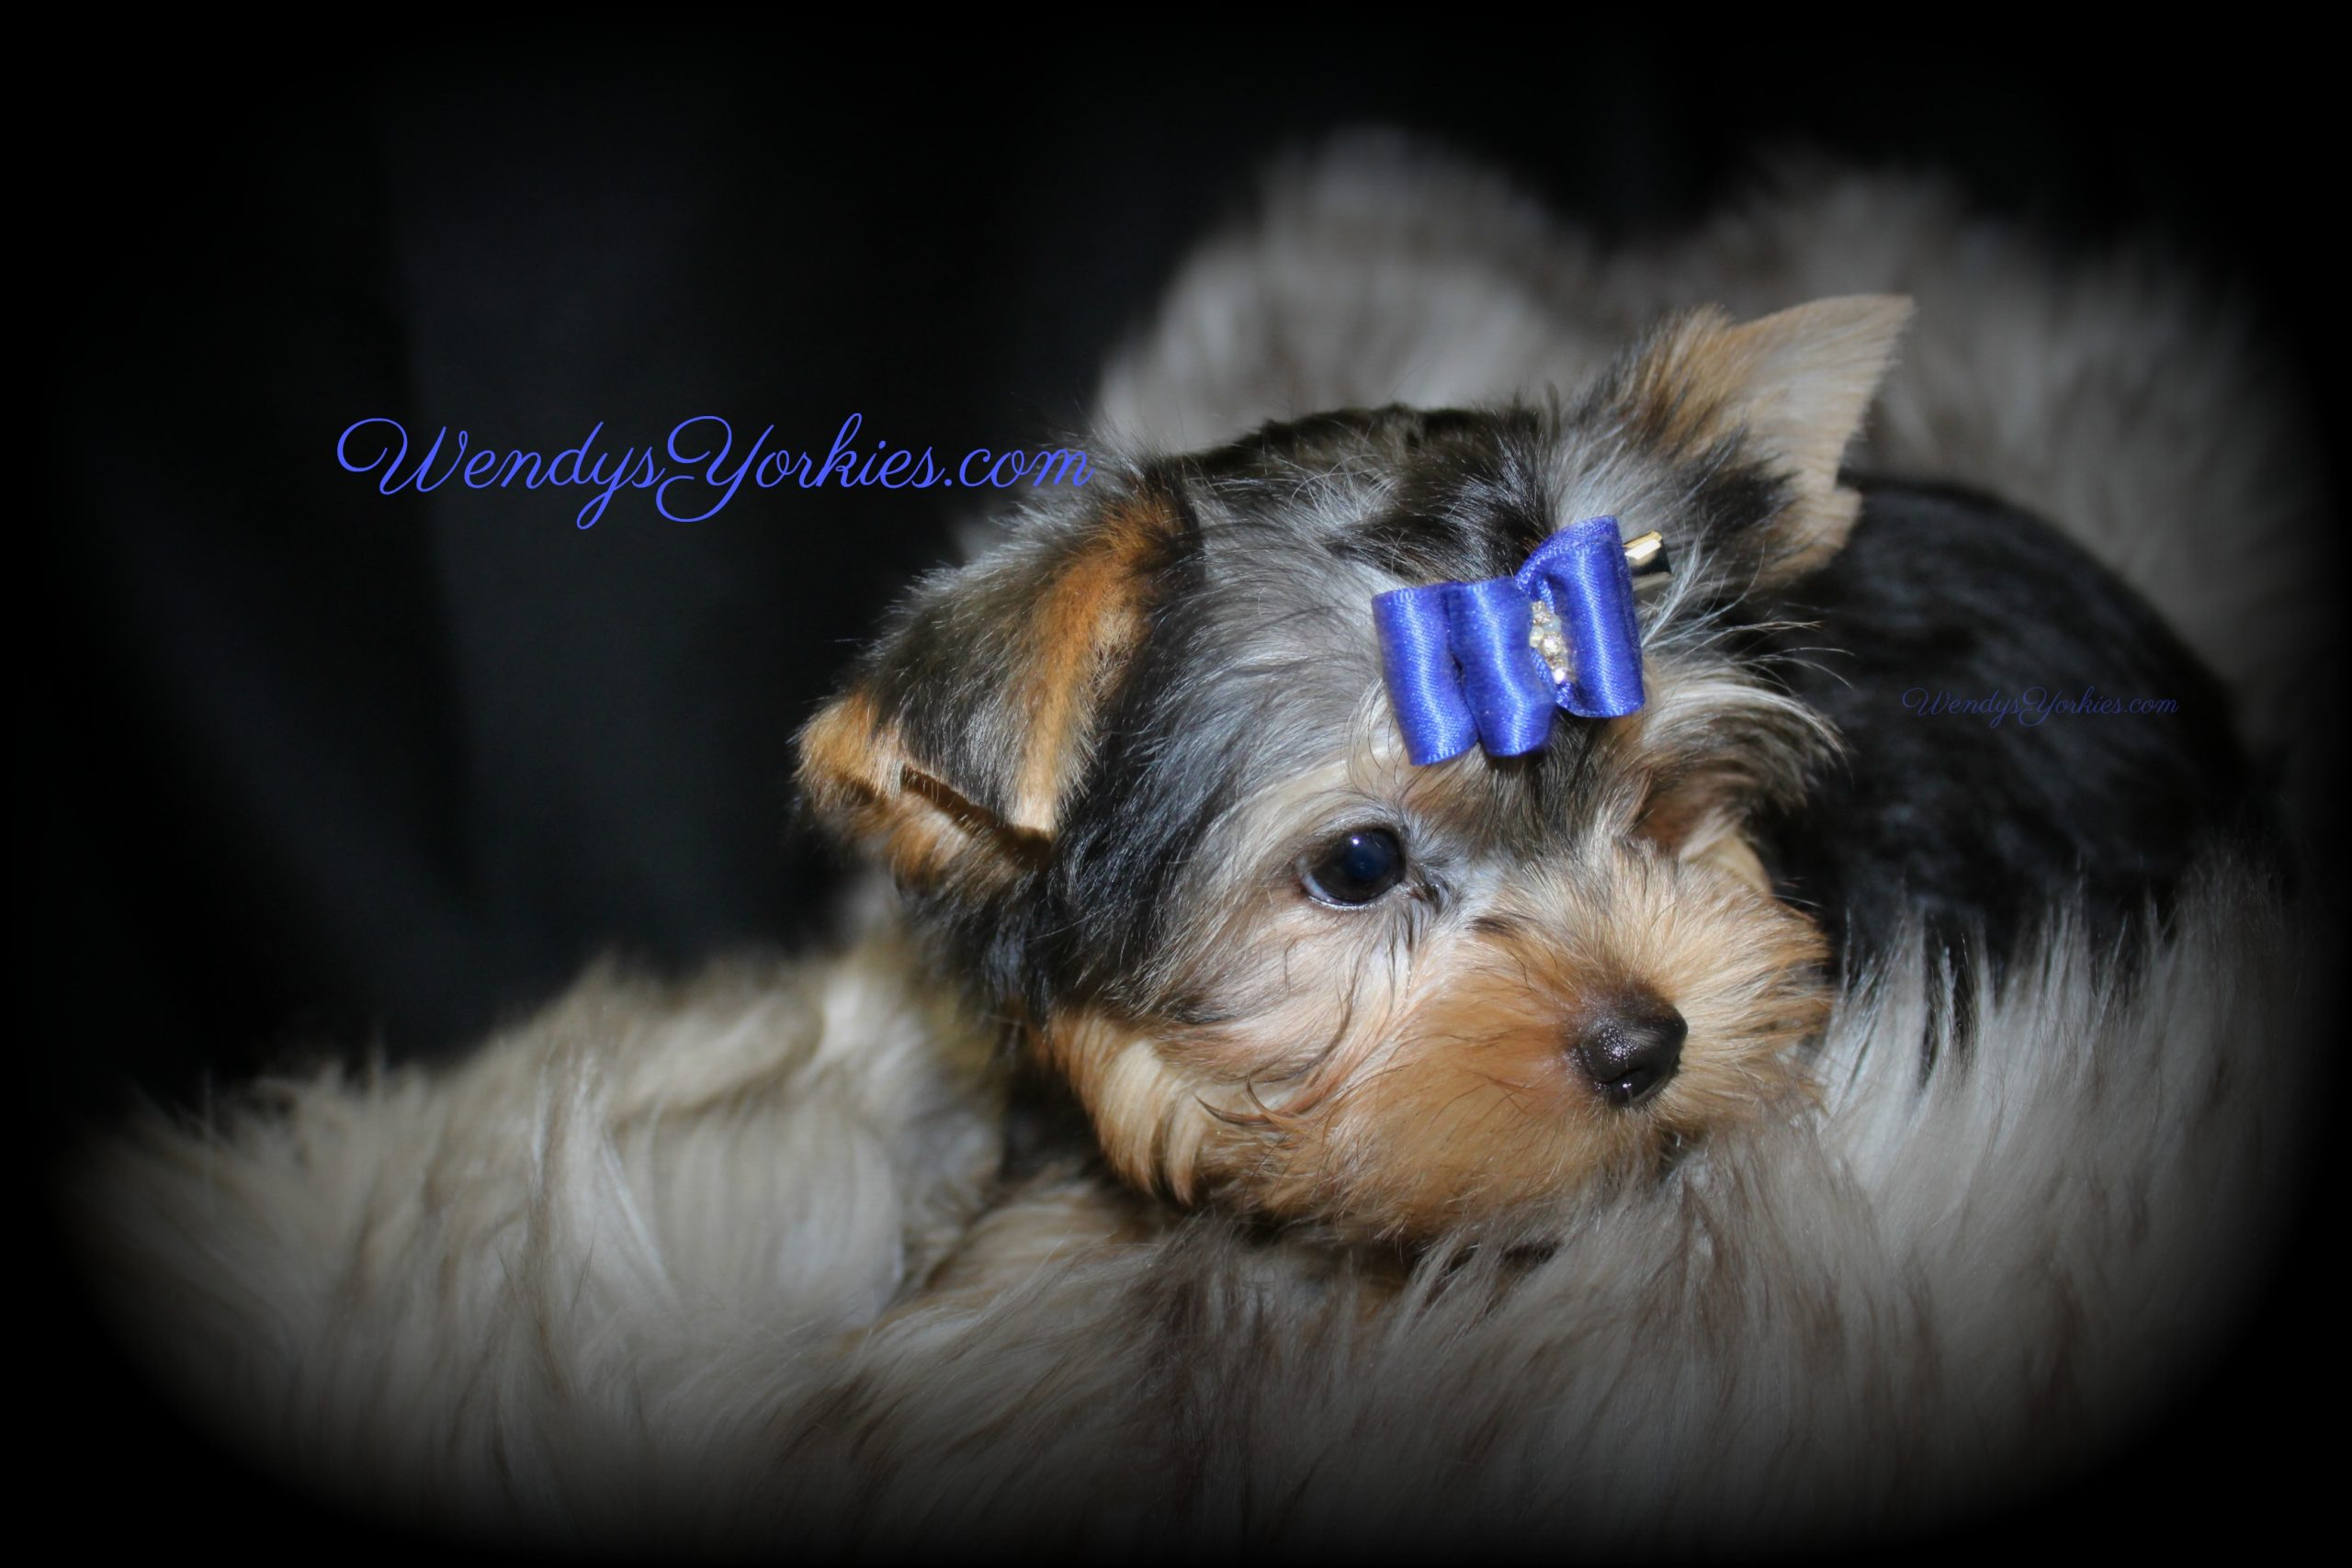 Yorkie puppy profile, Ritz, WendysYorkies.com